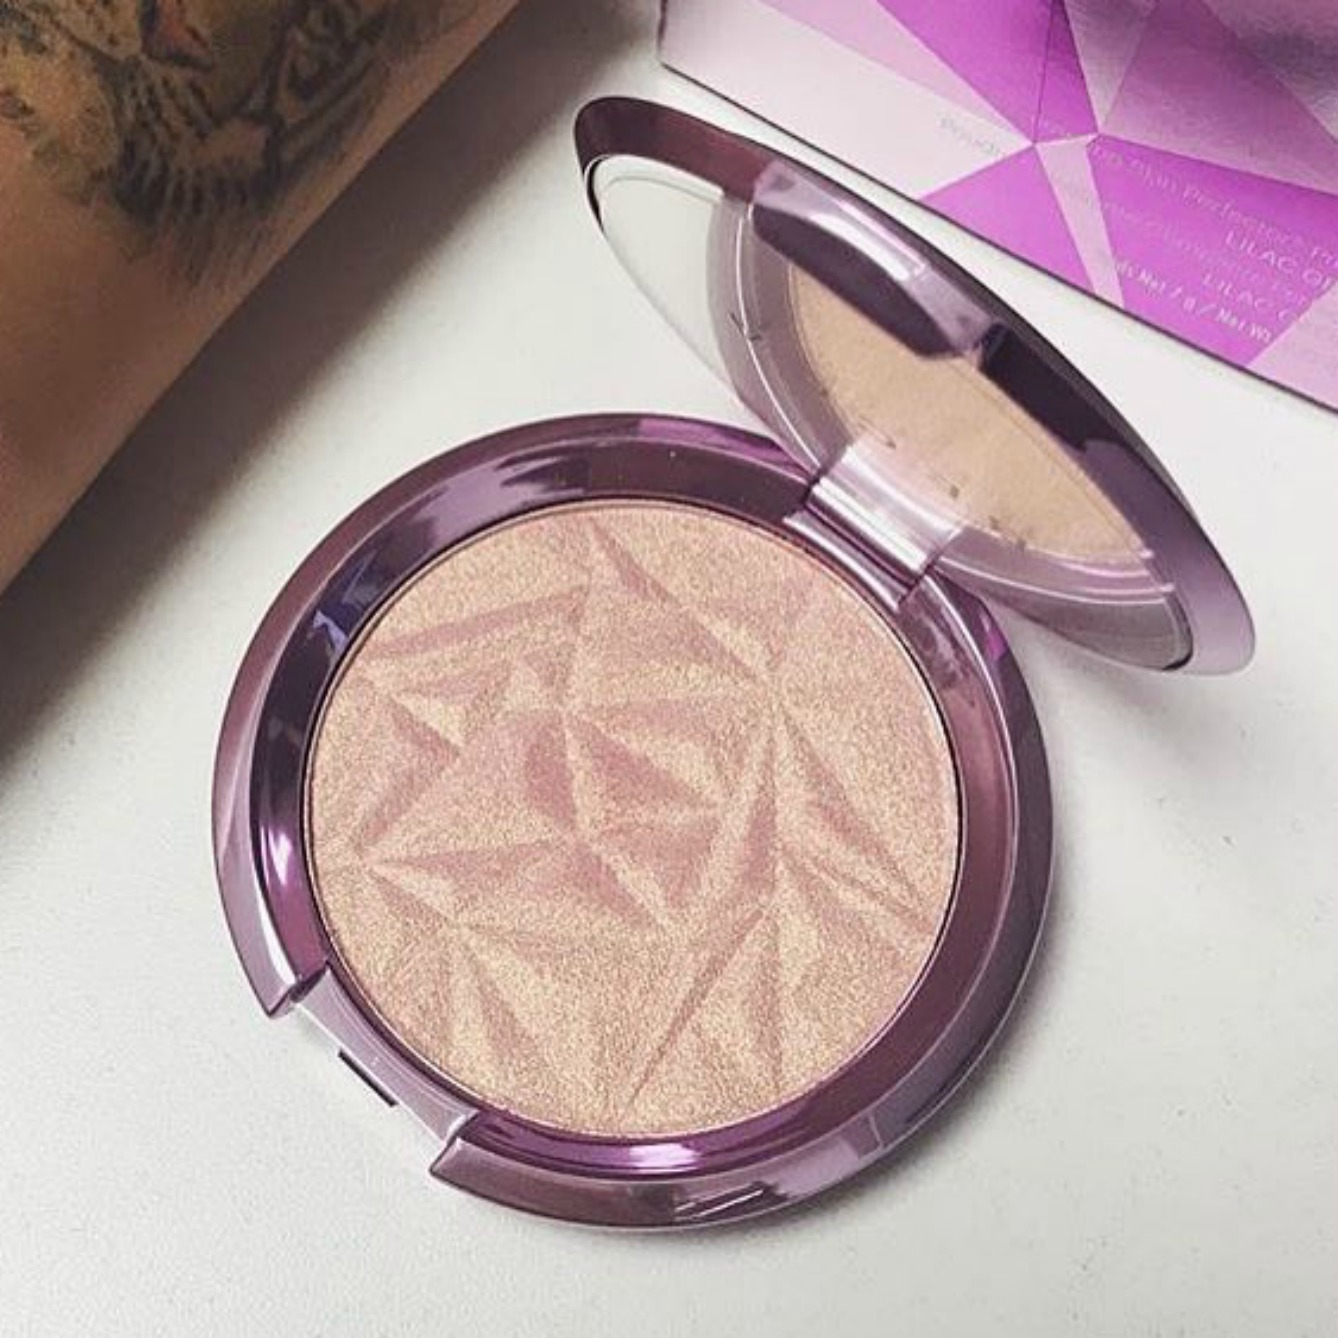 BECCA Surprise Dropped a New Highlighter